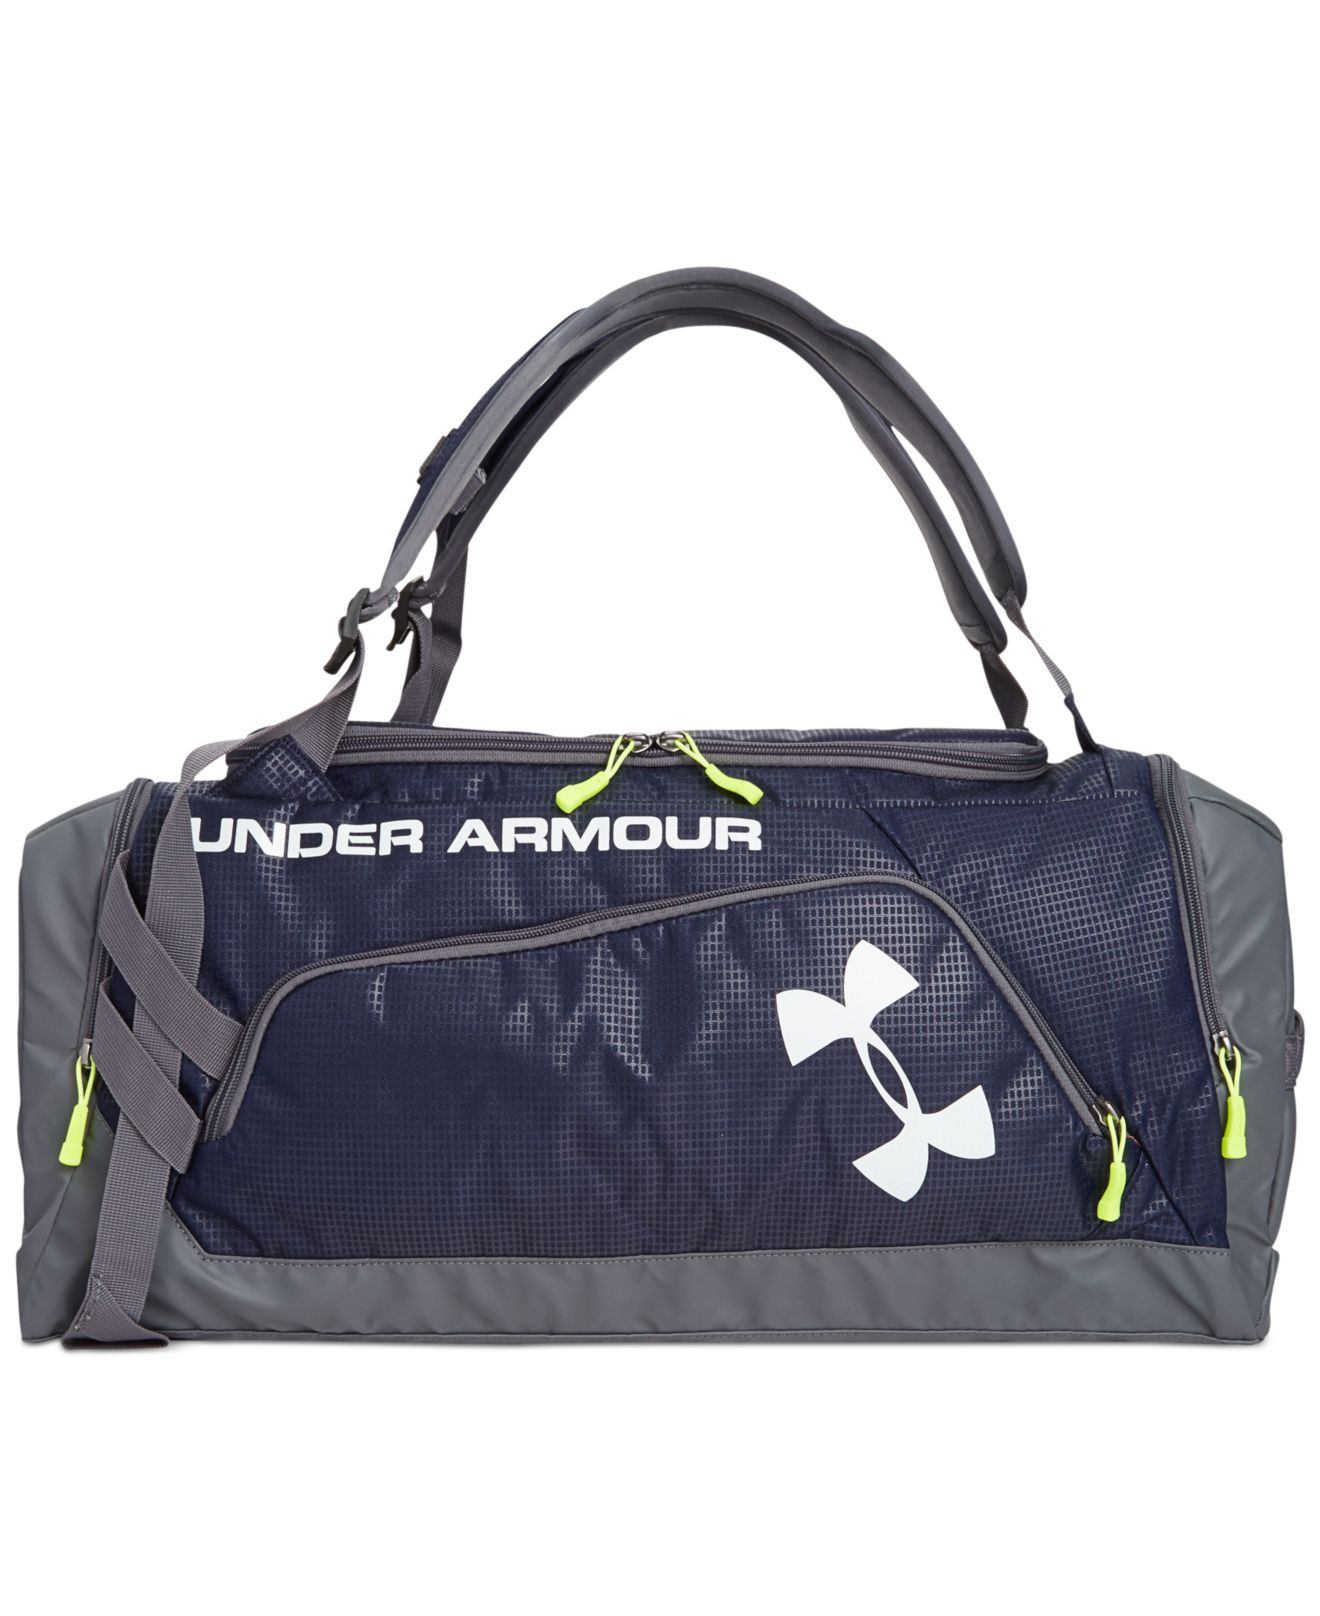 4c33bc2240 Lyst - Under Armour Contain Duffel Backpack in Blue for Men